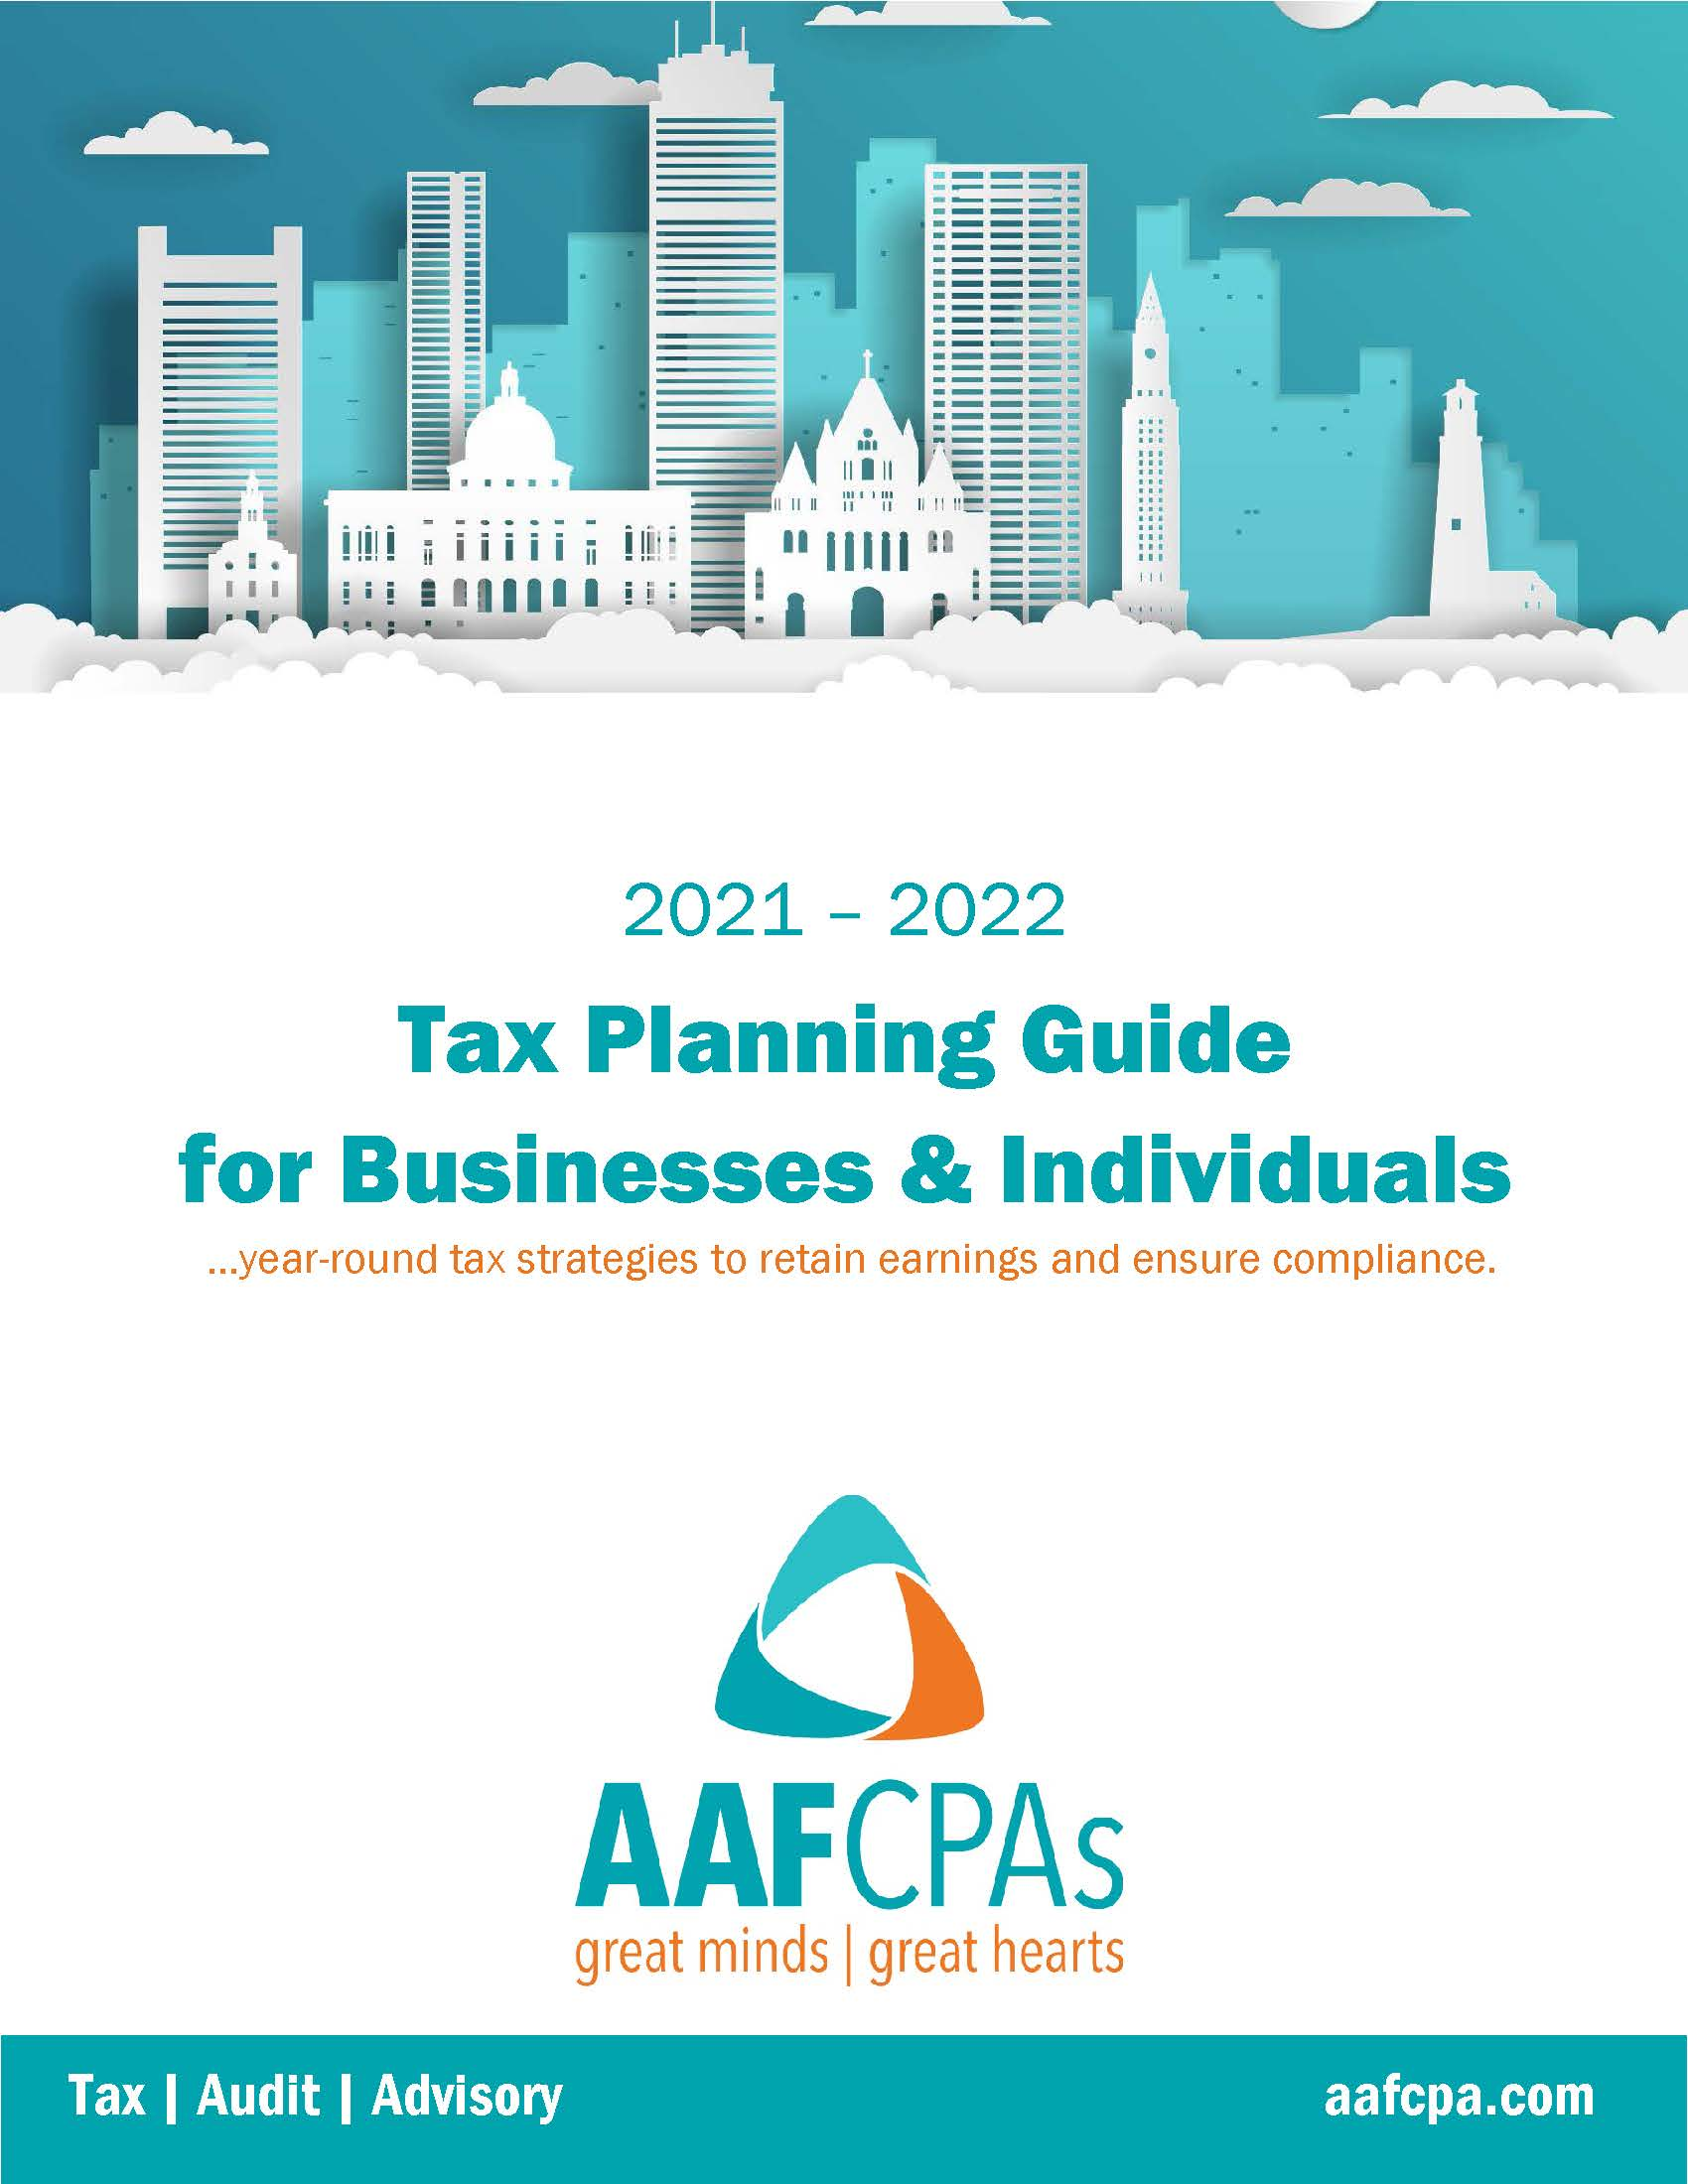 Tax Planning Guides for Businesses & Individuals (2021-2022)